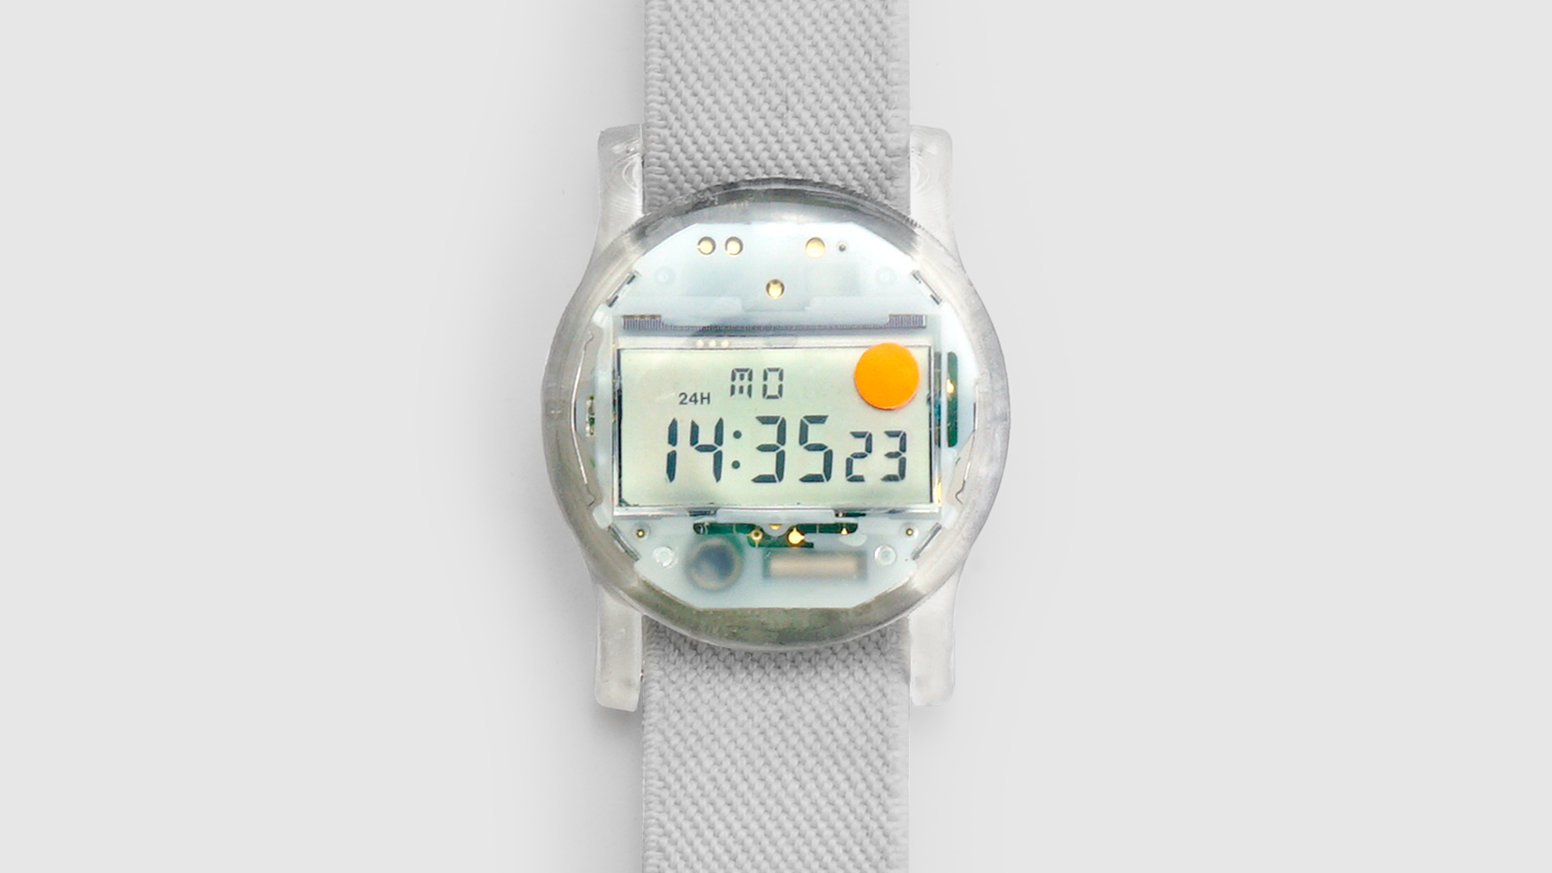 A watch, but also an art project inviting us to think about consent within the context of electronic obsolescence and decay.